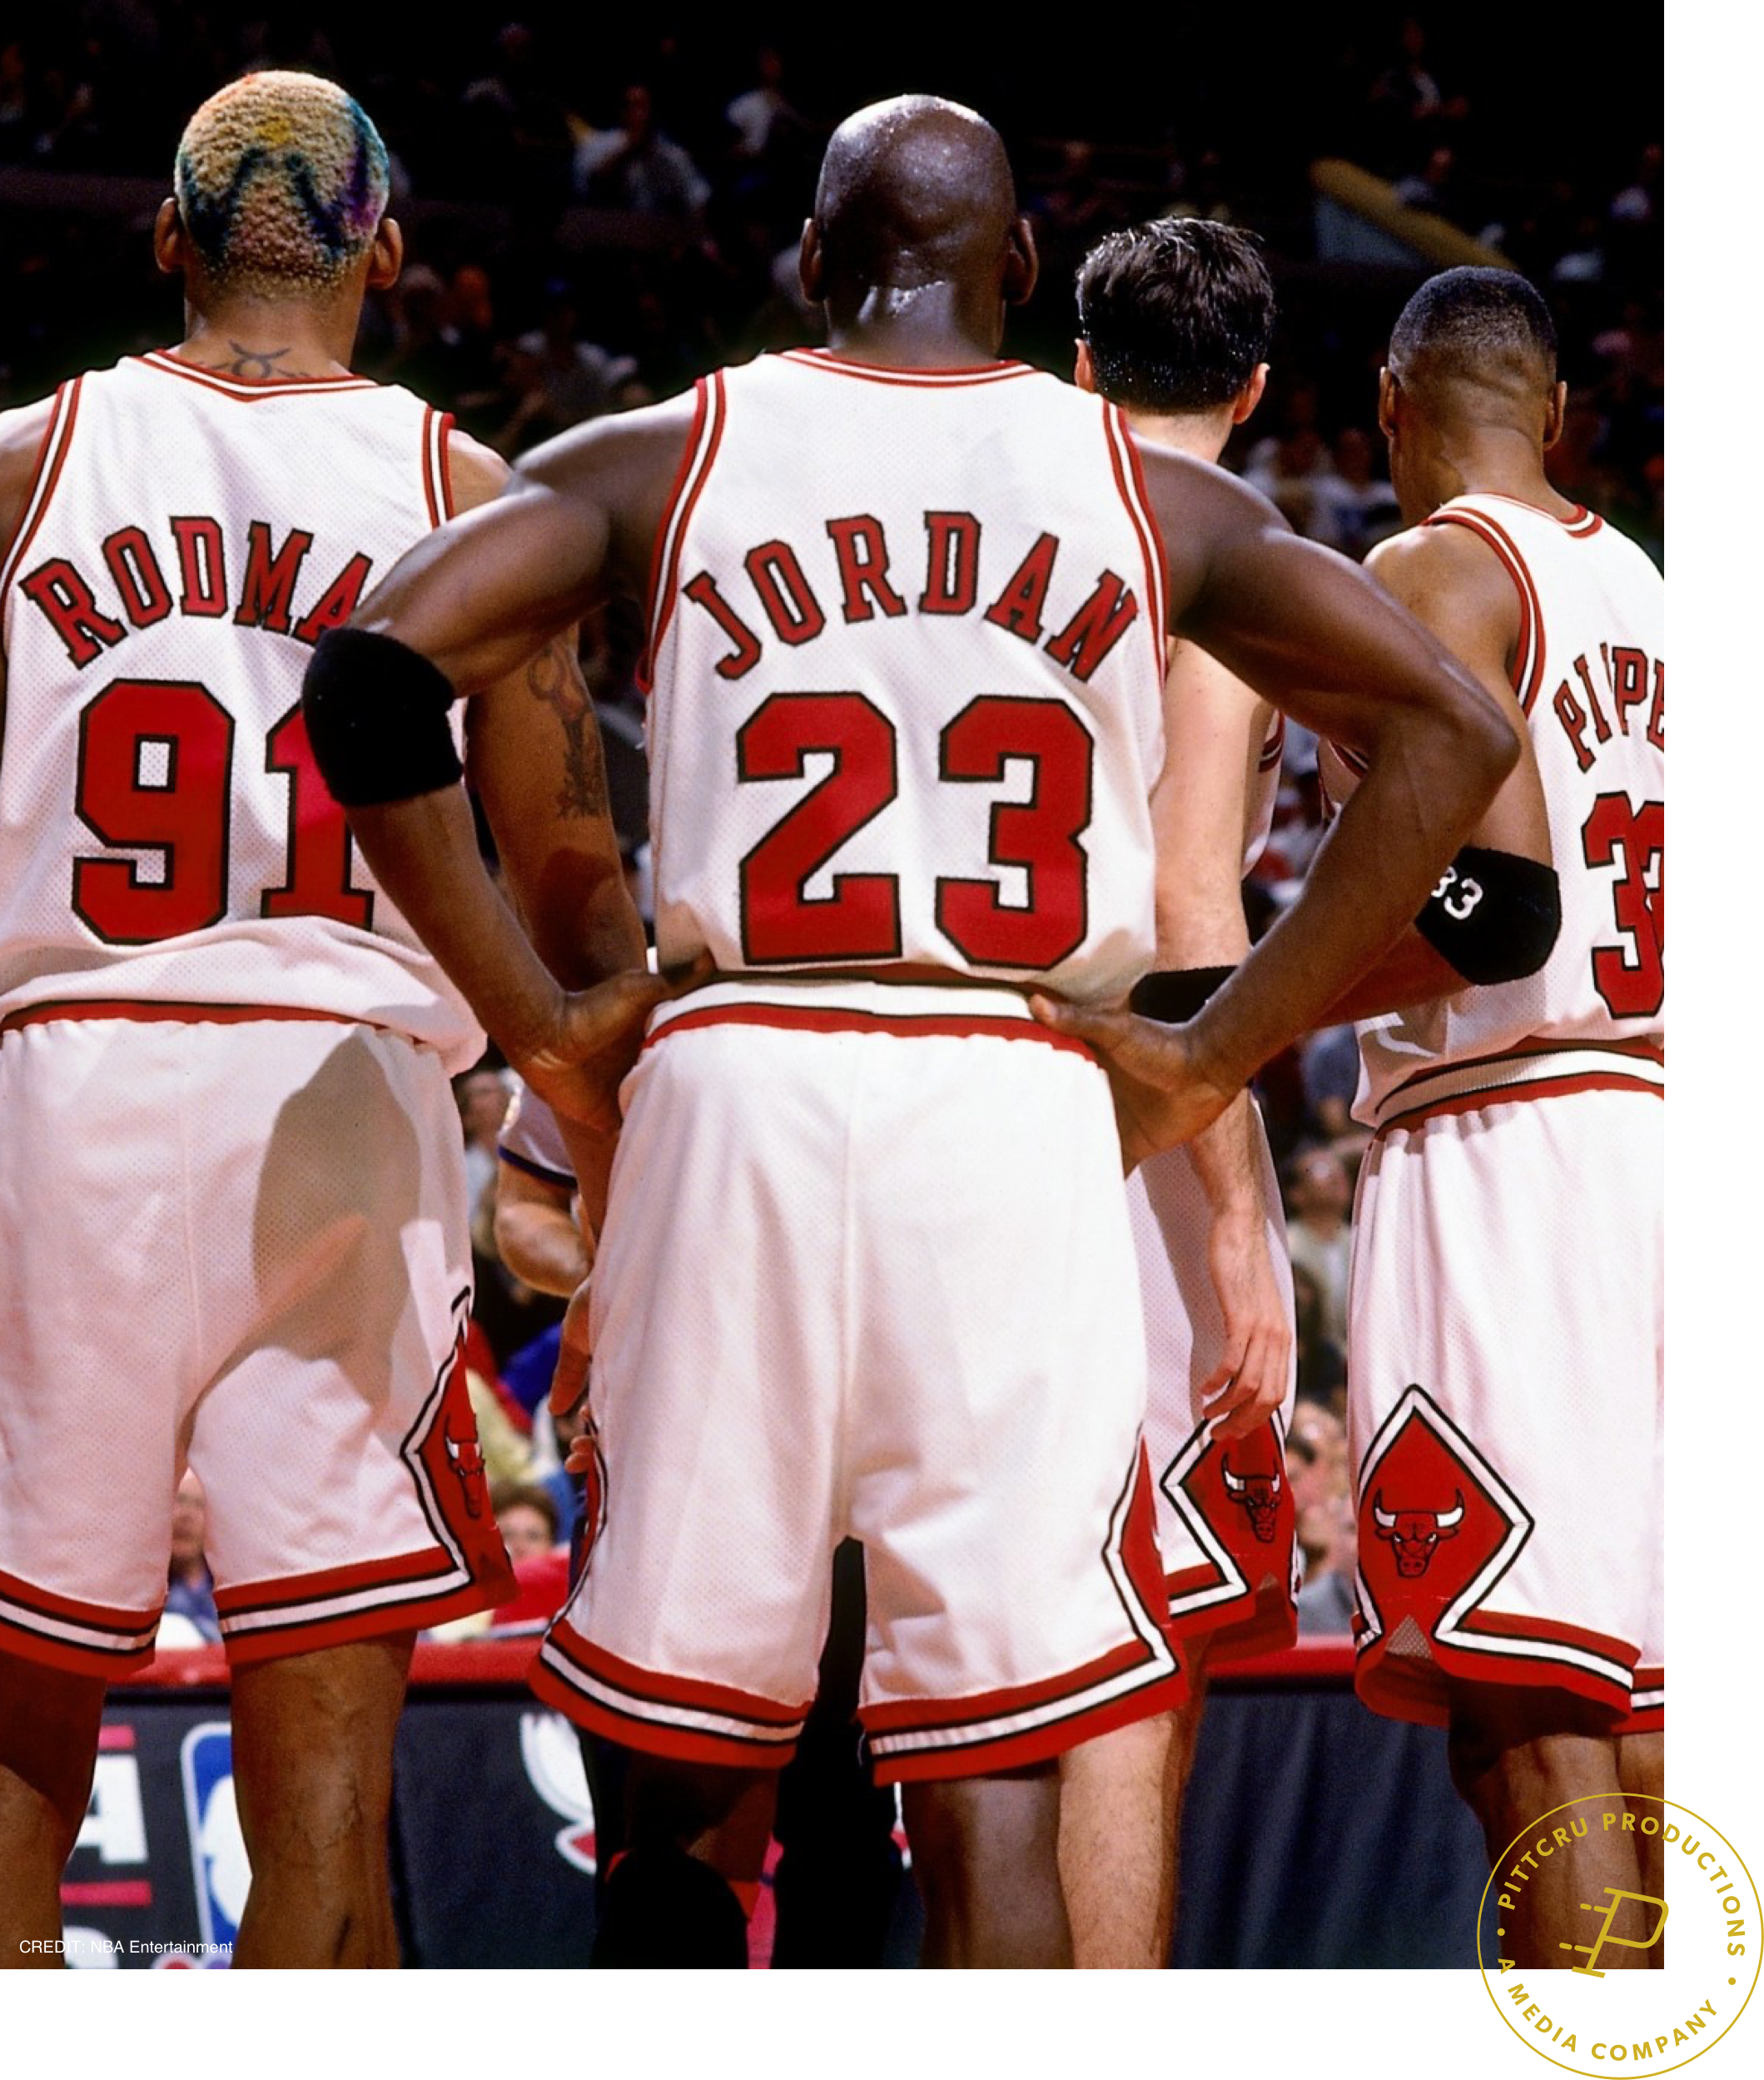 The Last Dance - Teaming up once again with director Jason Hehir, PittCru is producing a 10-part documentary series on the Chicago Bulls' 1998 season, featuring Michael Jordan.The production is a joint venture with ESPN & Netflix. Slated for 2019.Watch the Teaser